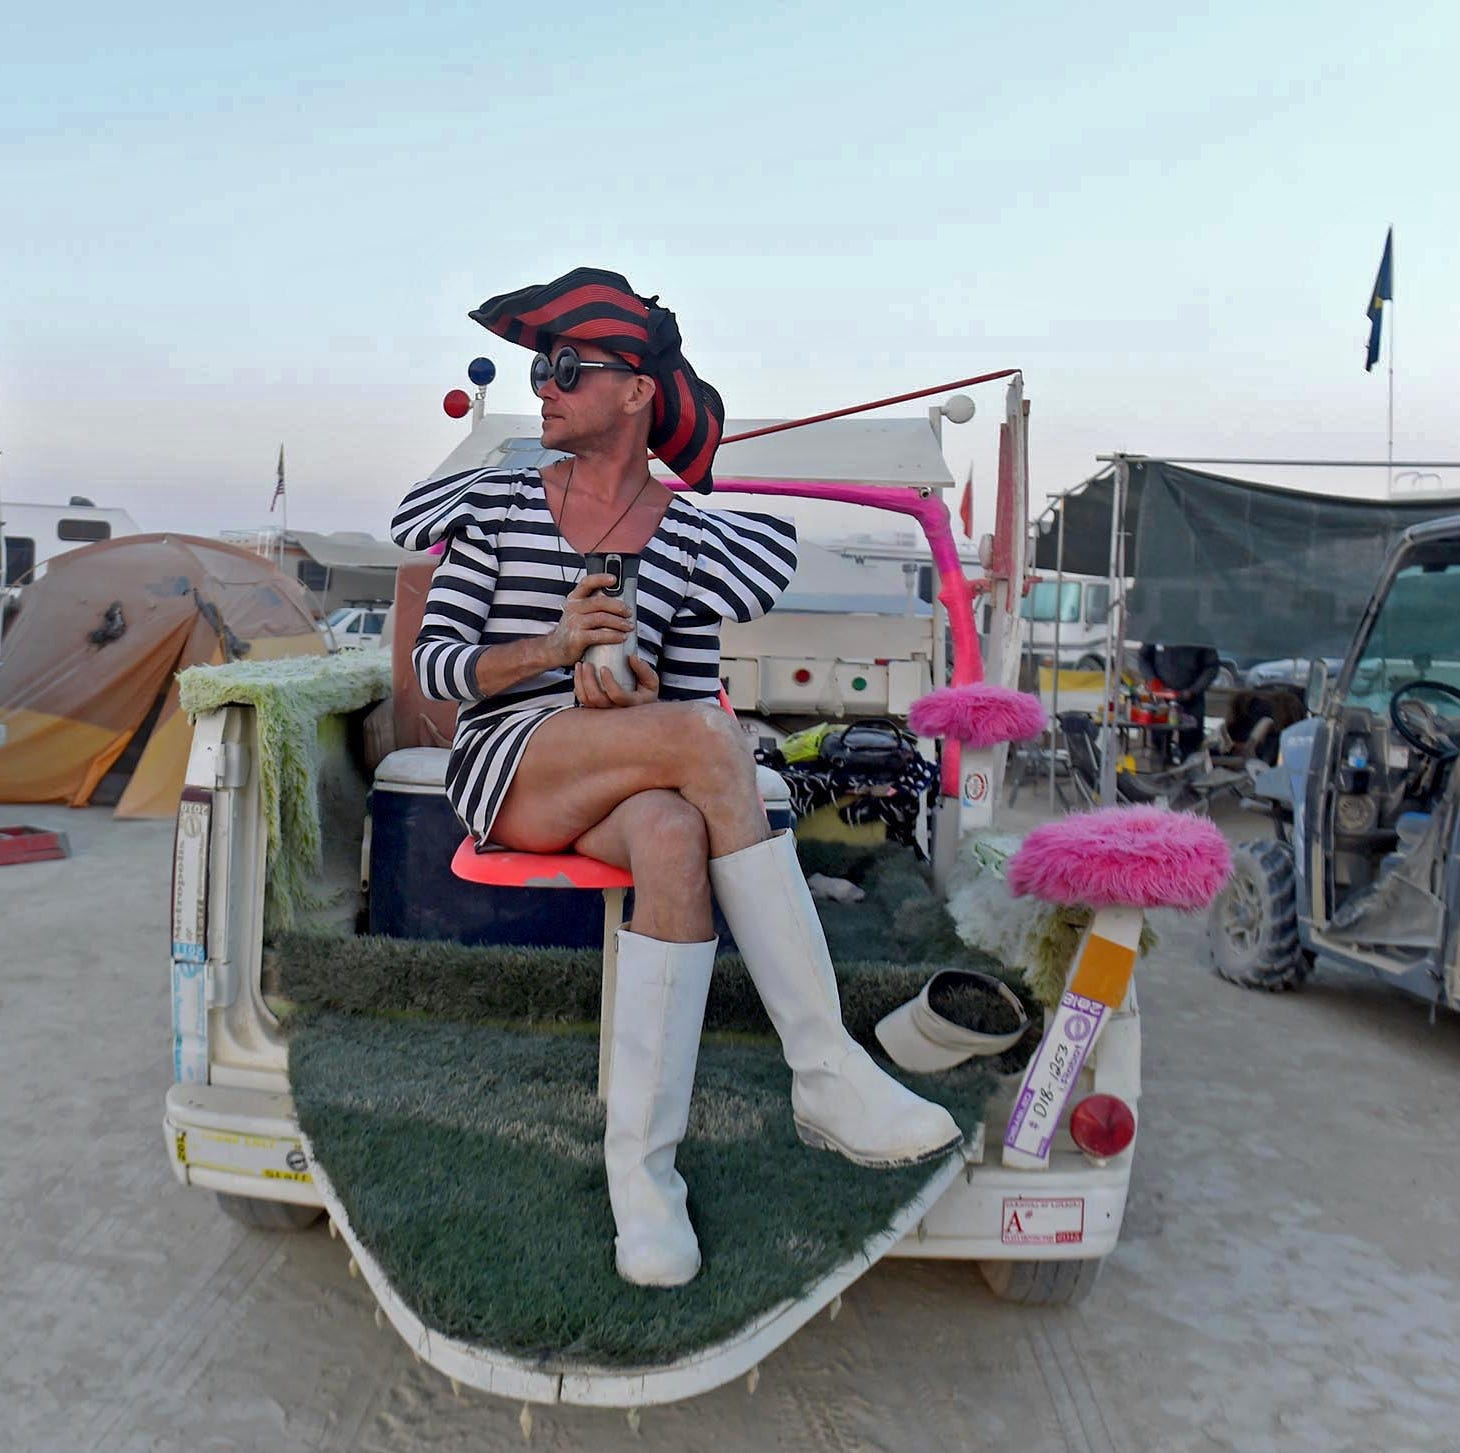 Burning Man tickets 2019: What you need to know